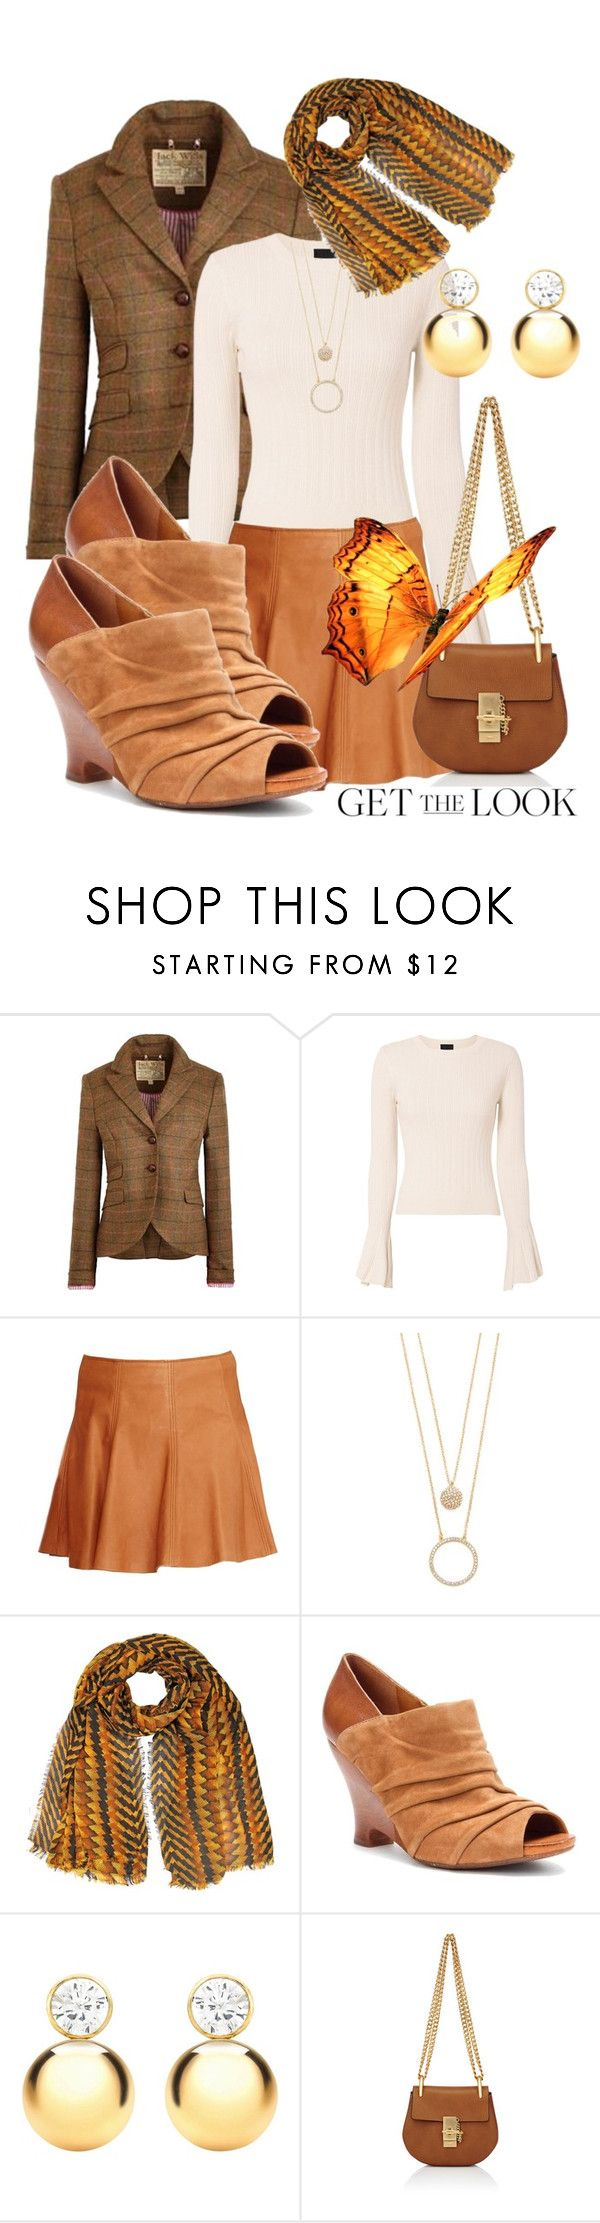 """""""Spring Trend Leather Skirts"""" by simply-one ❤ liked on Polyvore featuring Jack Wills, Exclusive for Intermix, Kate Spade, IBB and Chloé"""